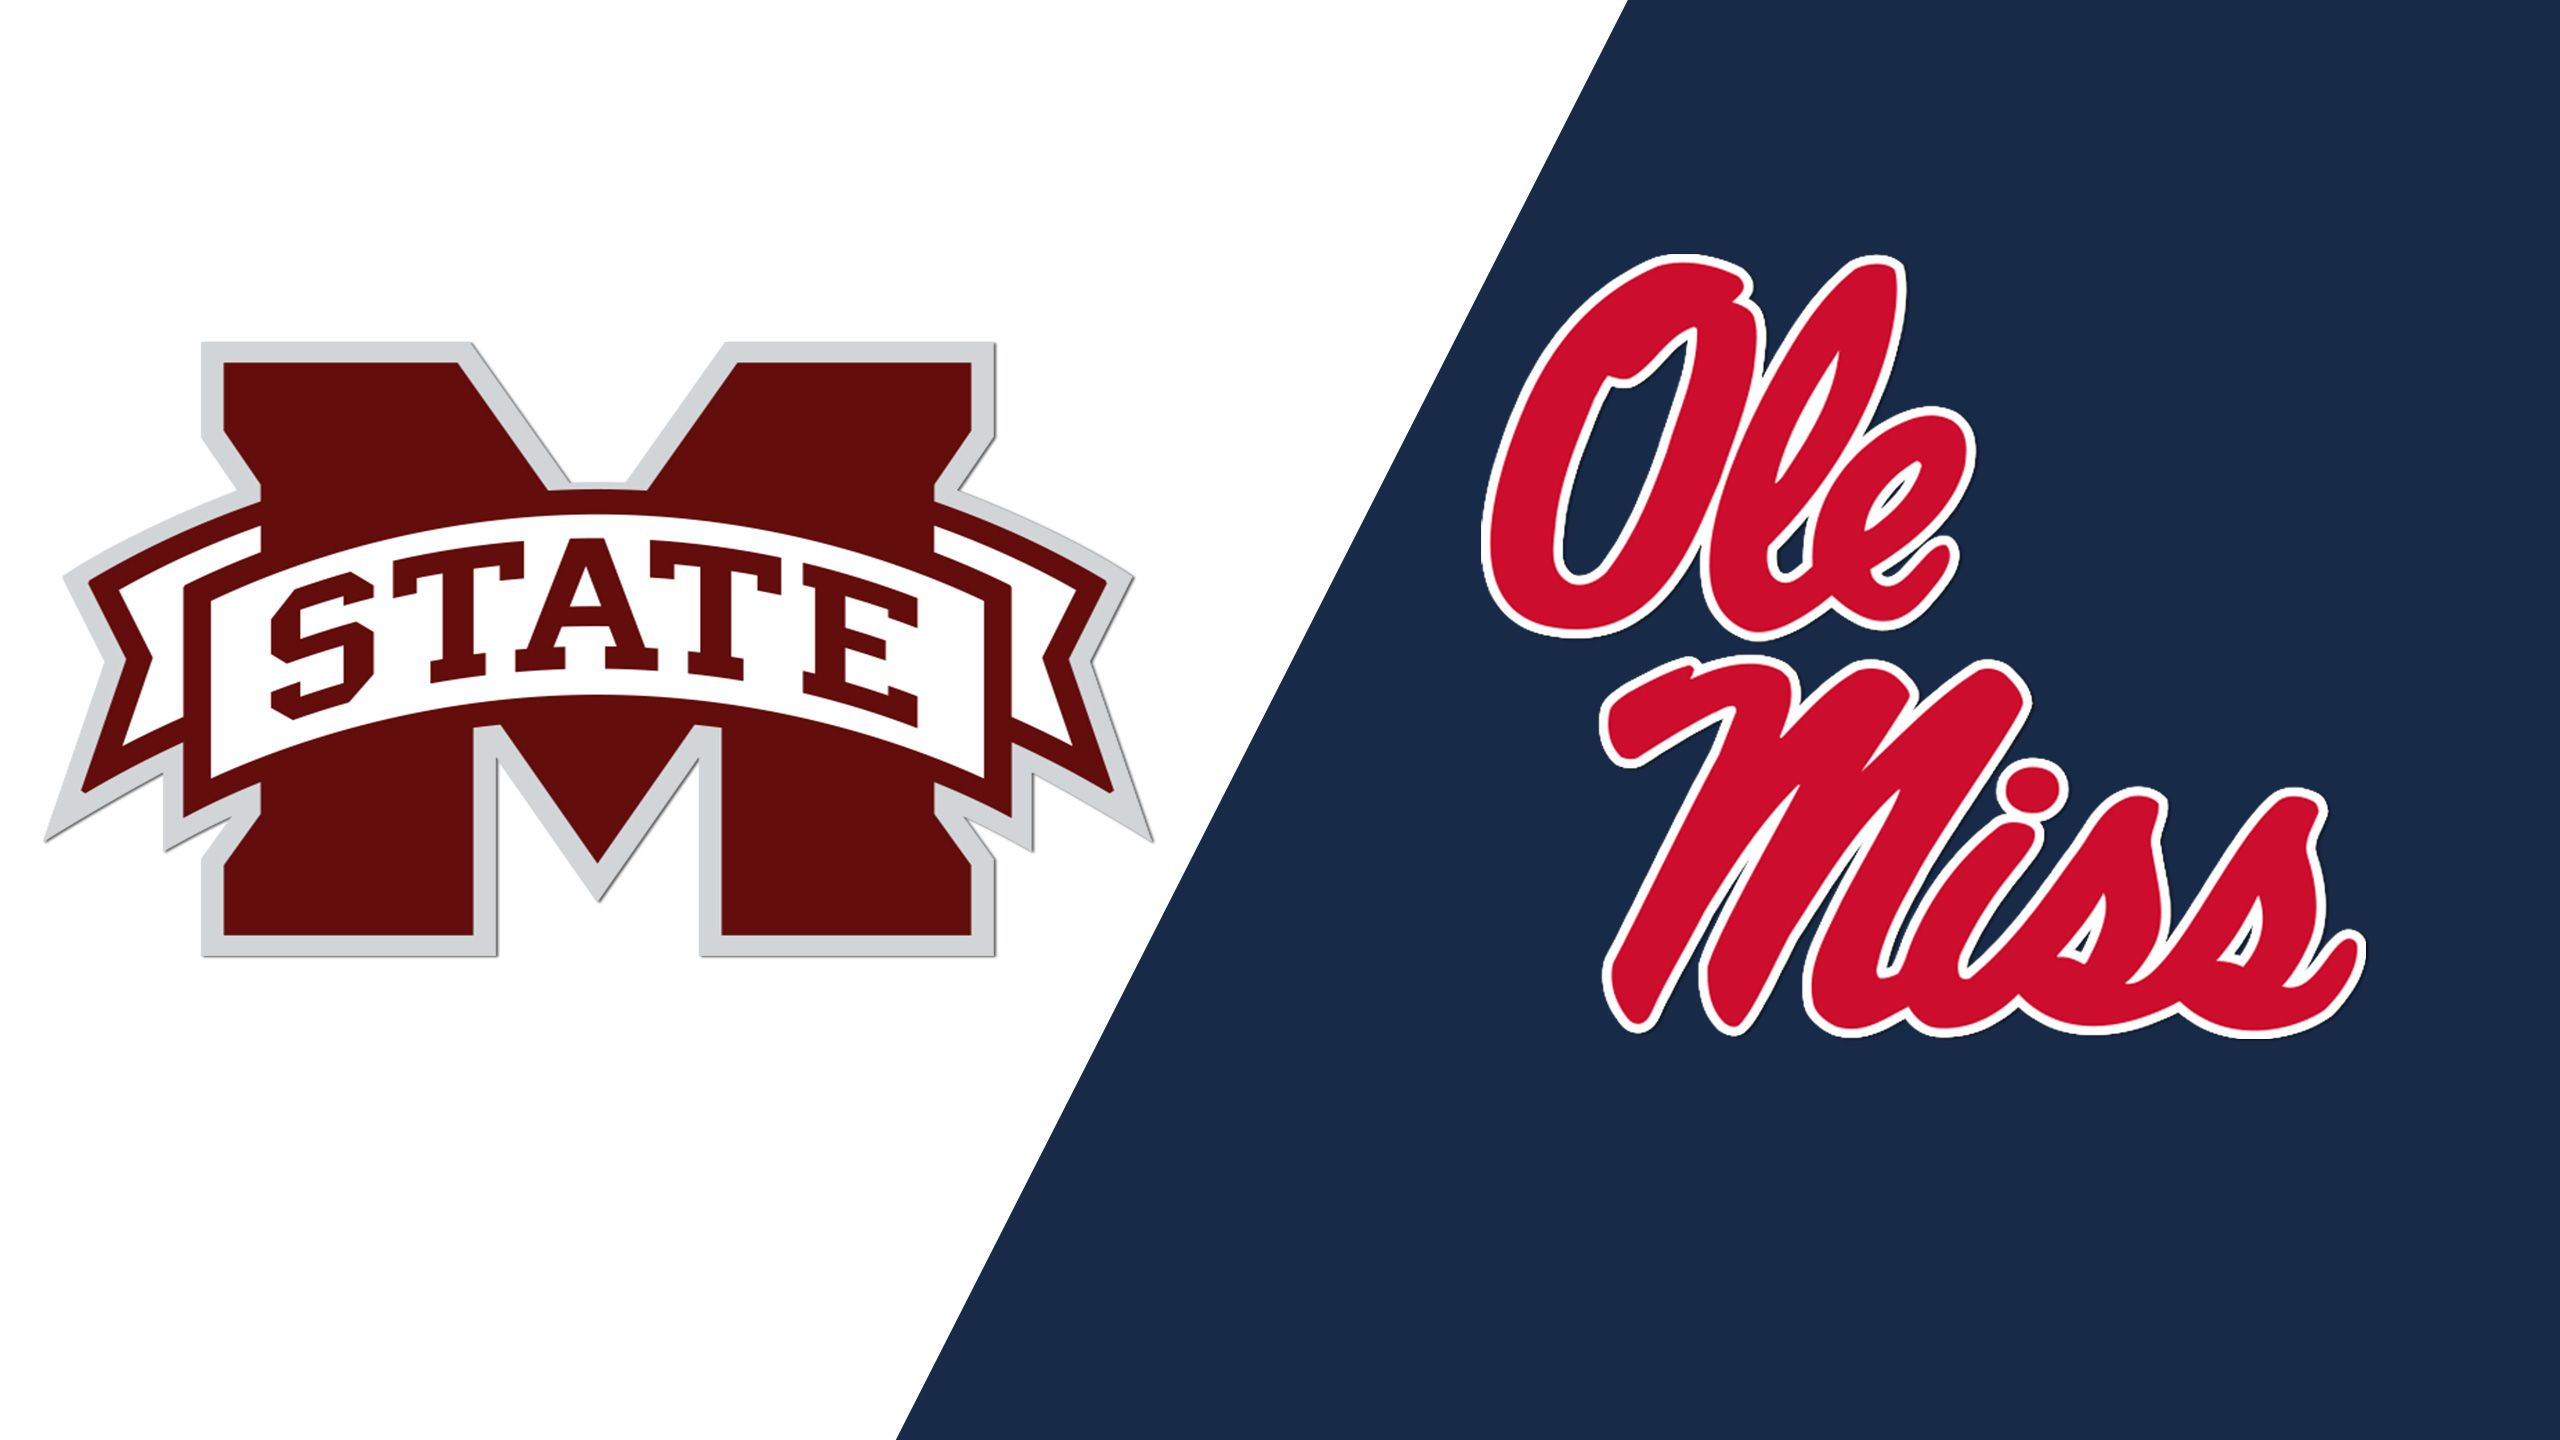 #24 Mississippi State vs. Ole Miss (Softball)